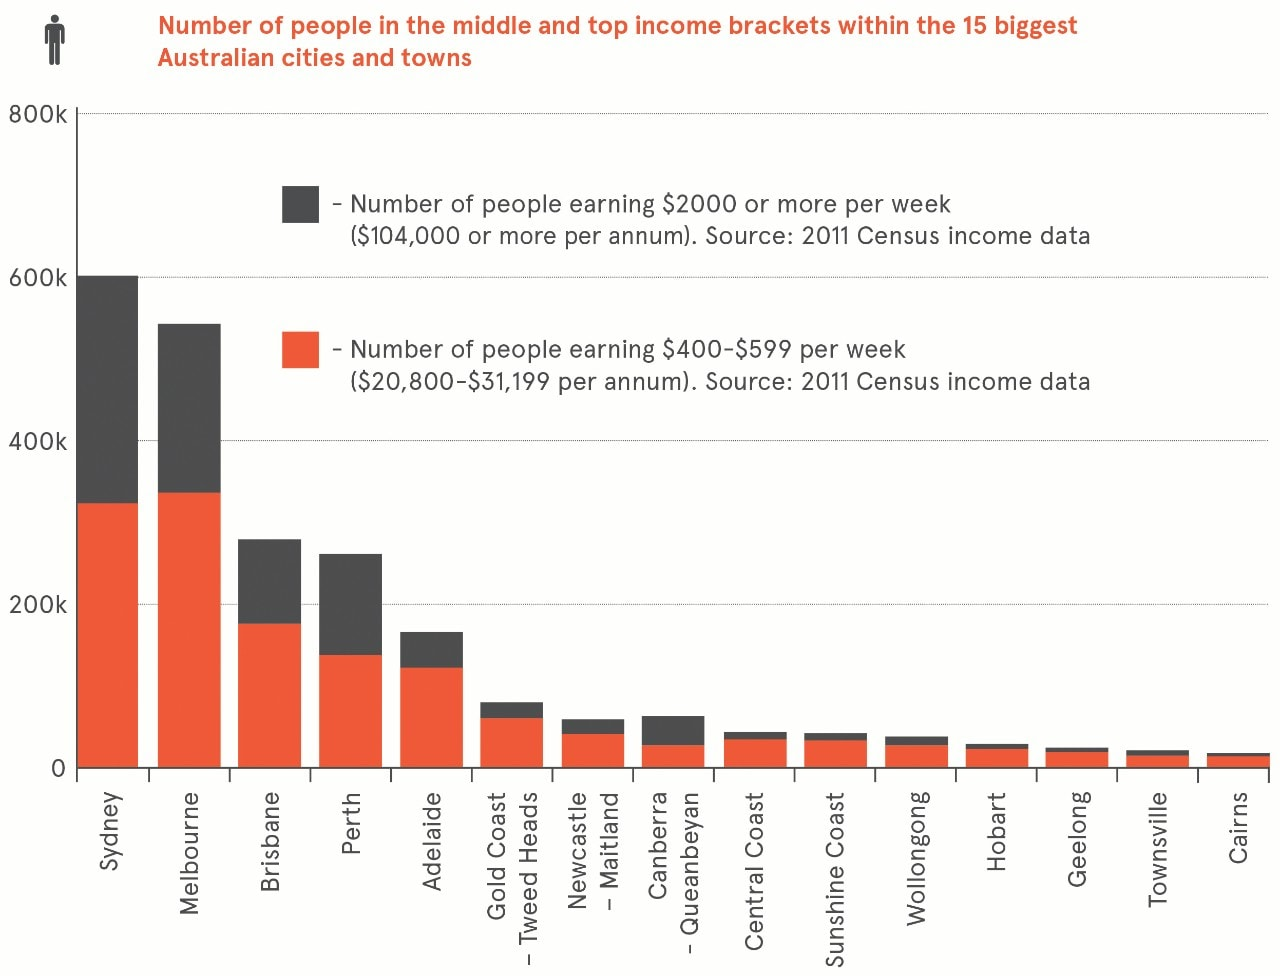 Bar graph showing number of people in the middle and top income brackets in the 15 biggest Australian cities and towns